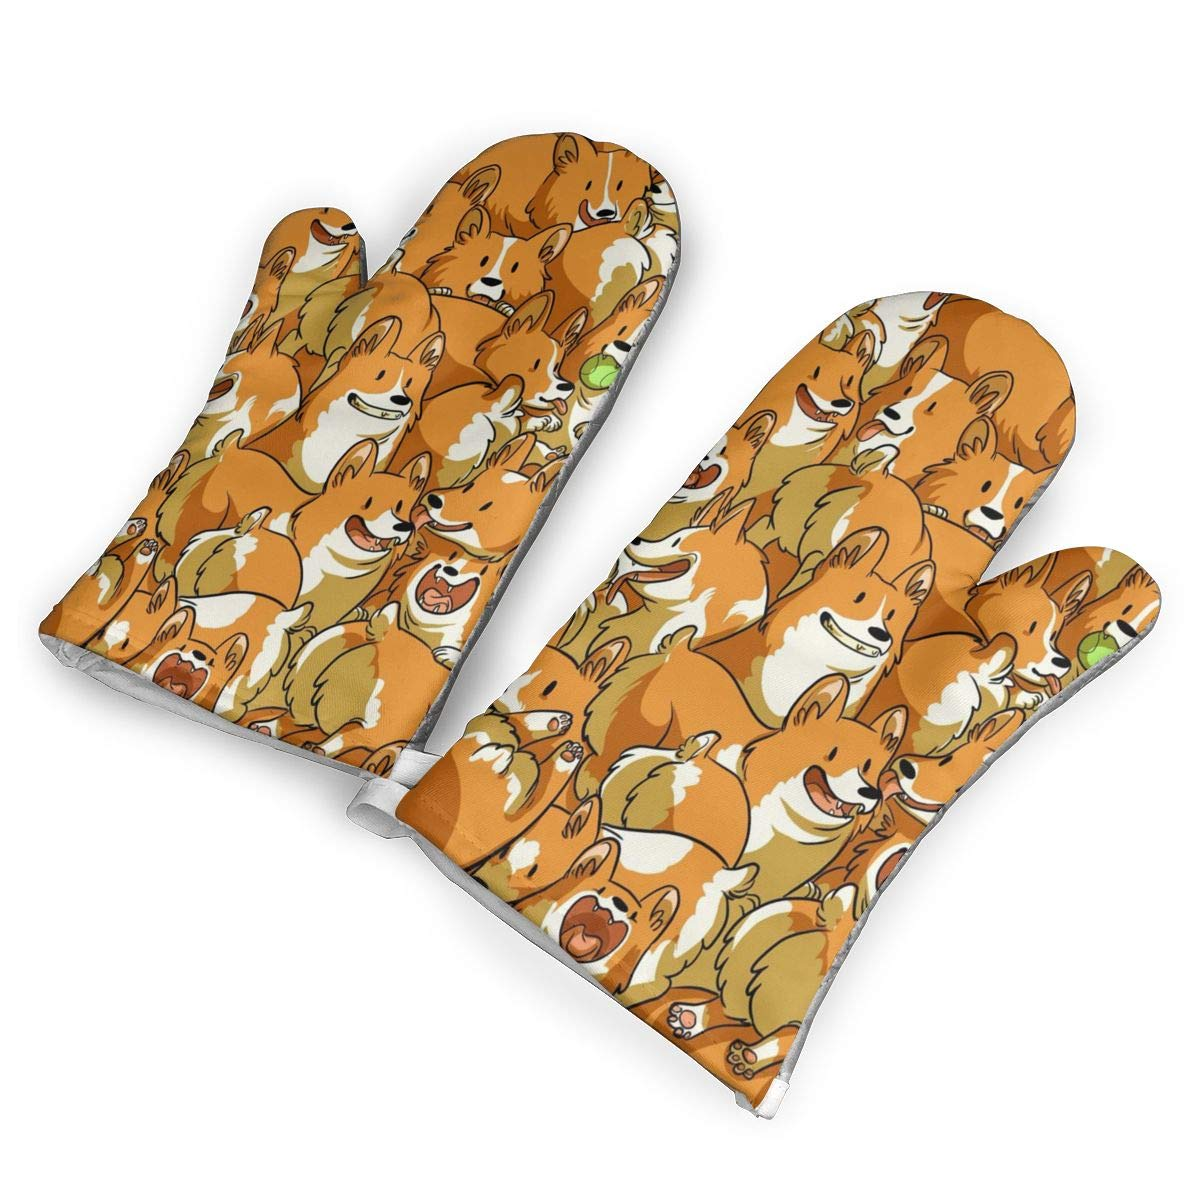 KIXYOUHUU Oven Mitts 5.5 X 12 in Cute Corgi Non-Slip Kitchen Oven Gloves Heat Resistant Washable Cotton Lining